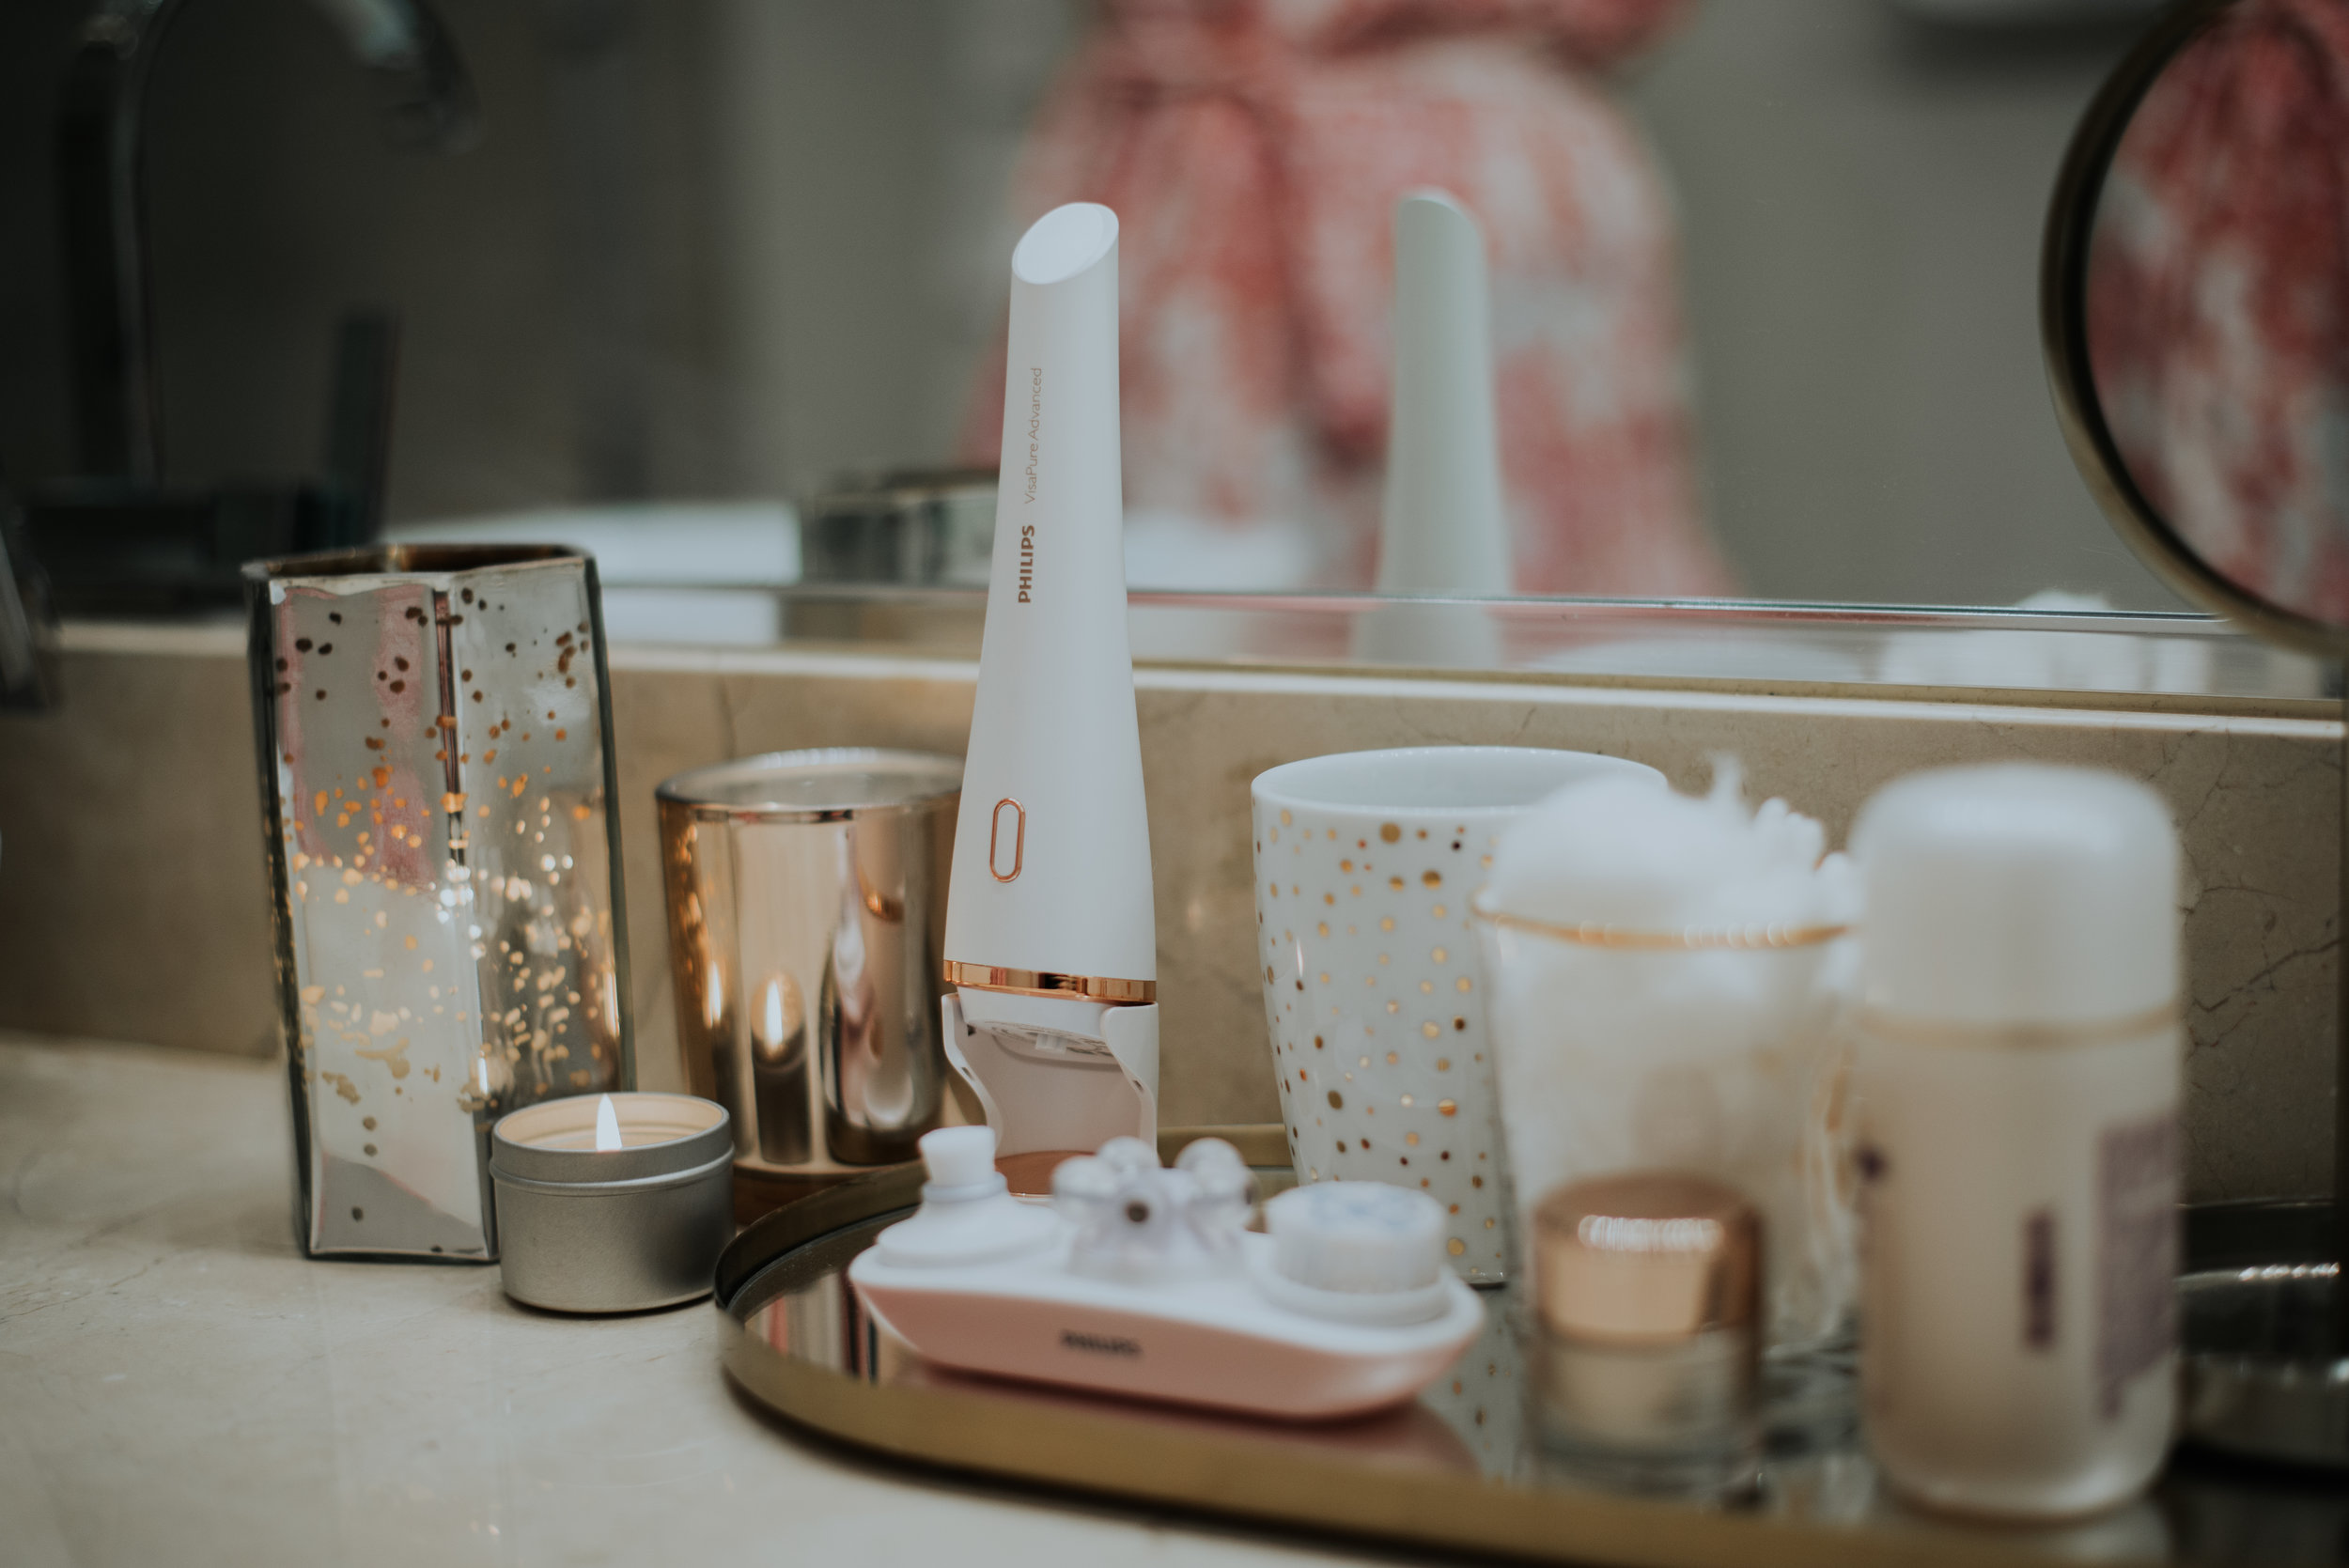 skin care products on countertop